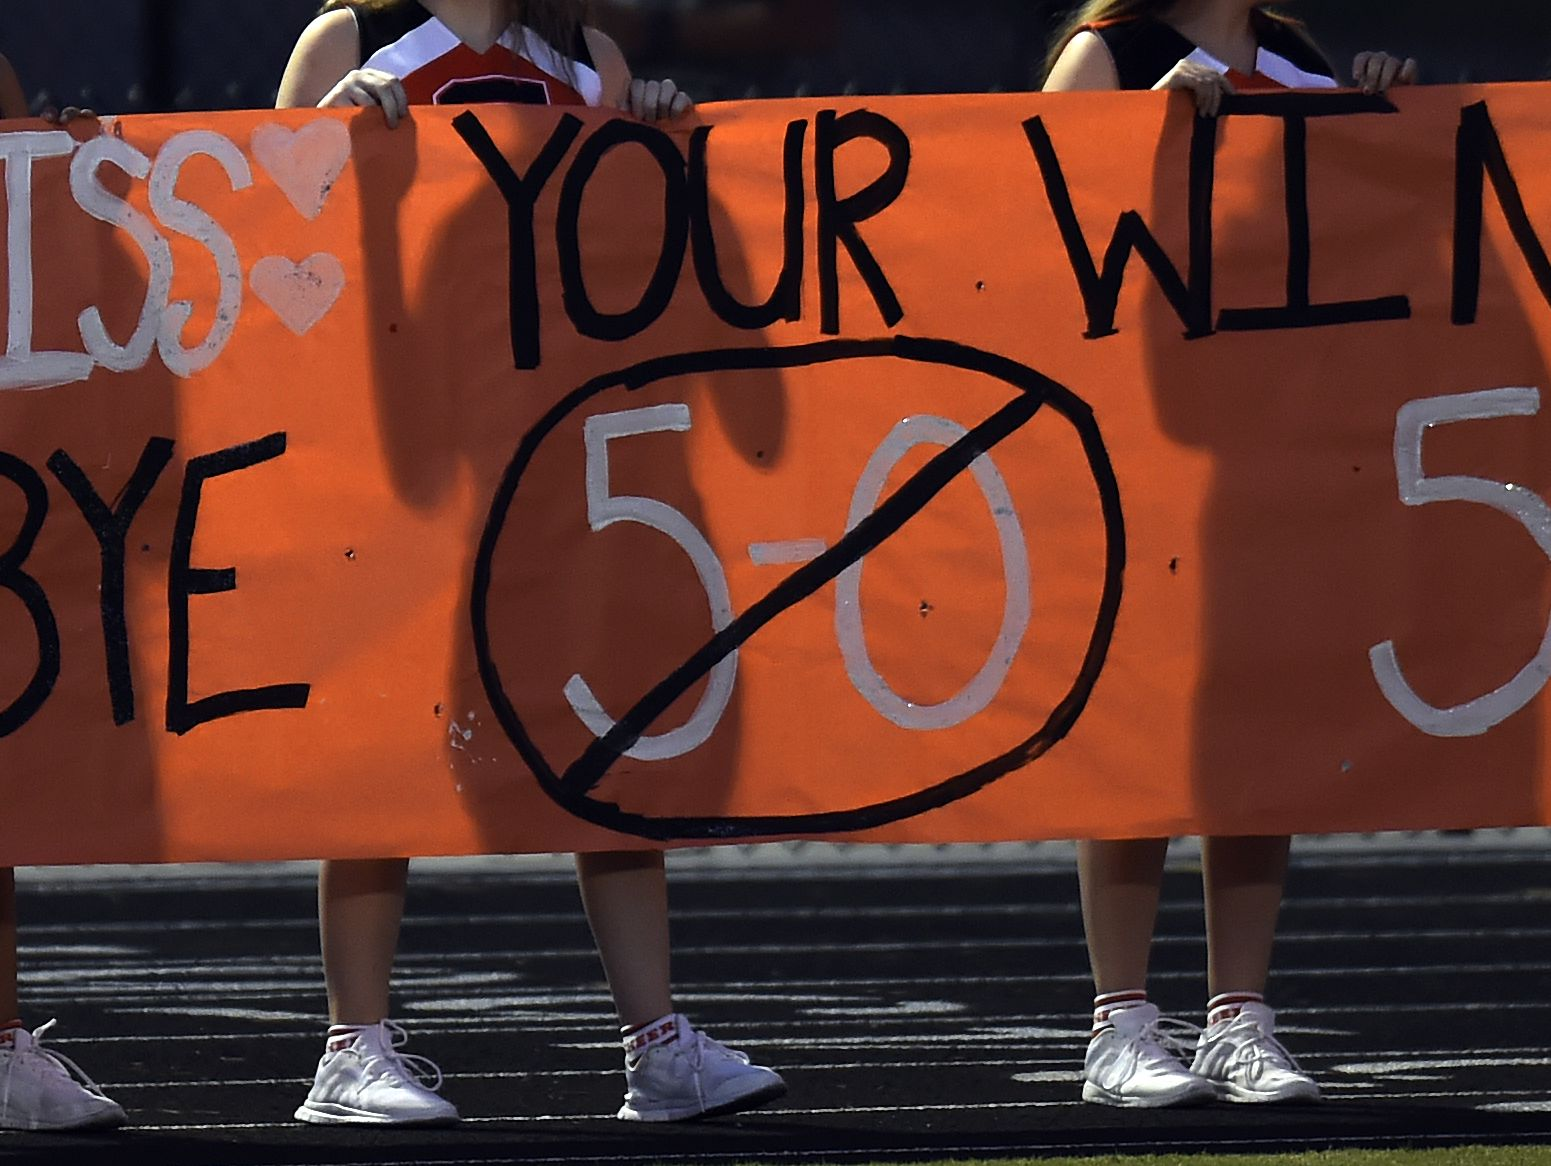 Stratford HIgh School cheerleaders hold a banner before a high school football game against Marshall County High School on Friday, Sept. 23, 2016, in Nashville, Tenn.